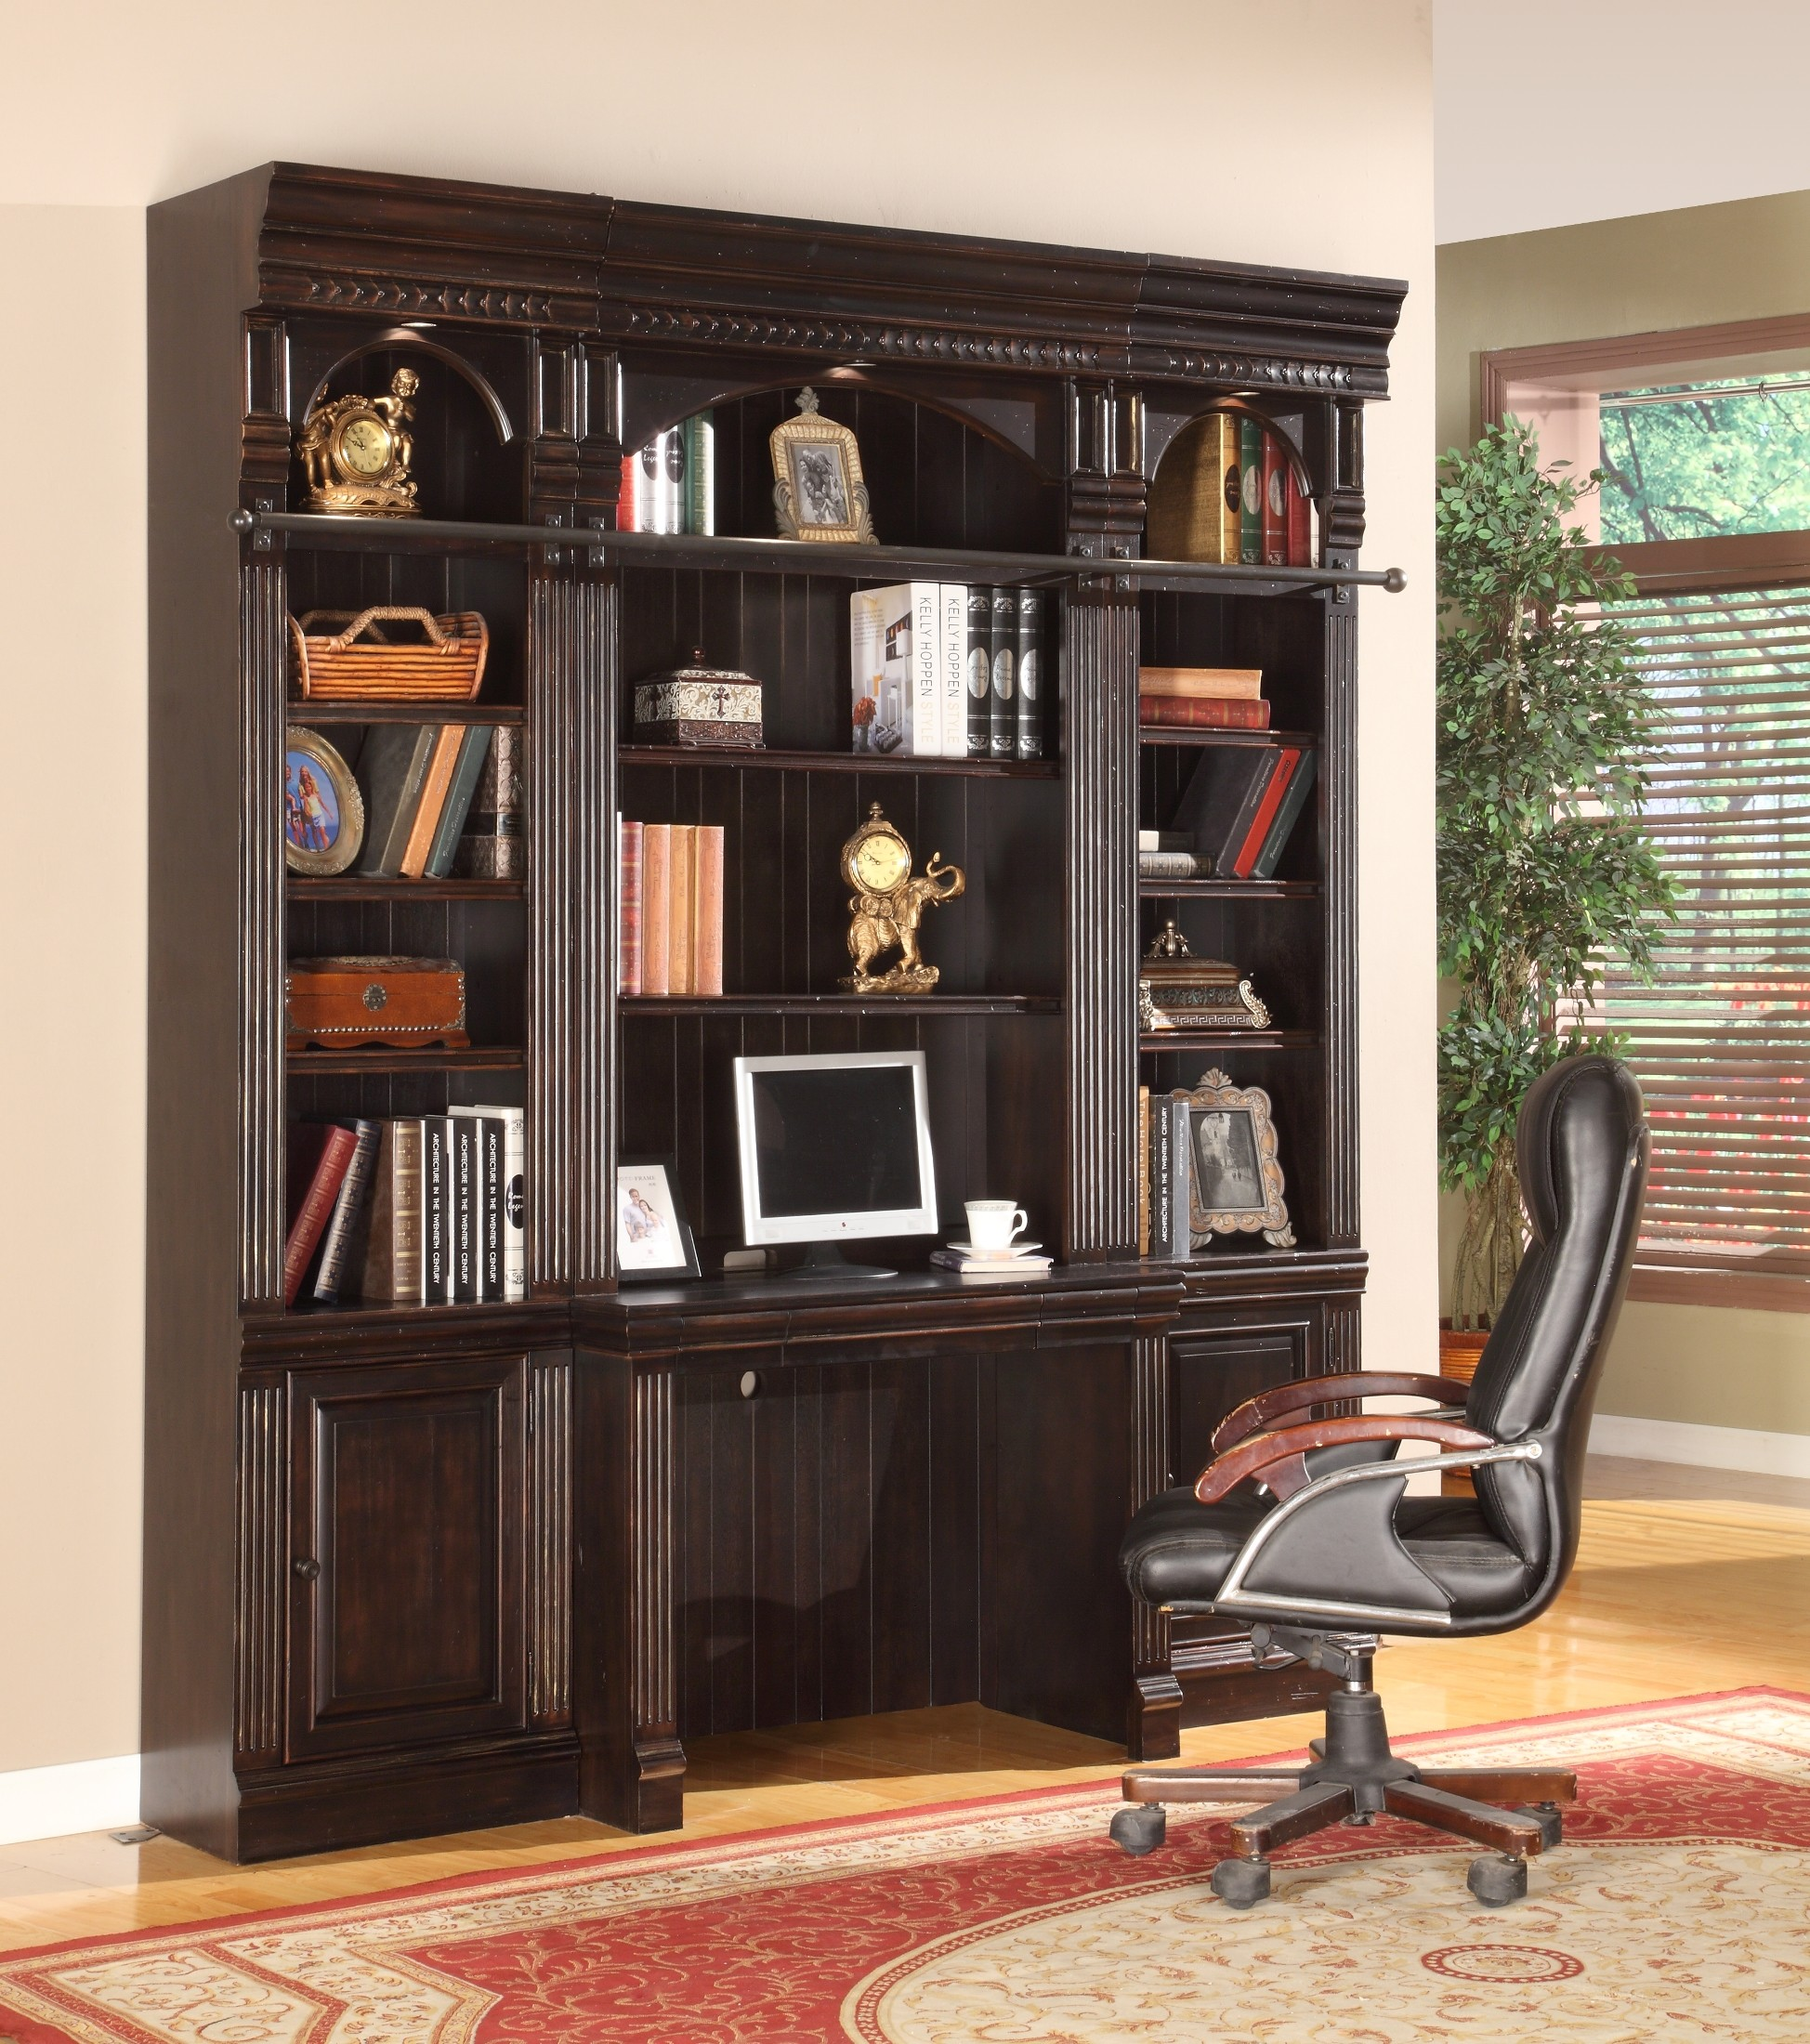 Wall Desk Units For Home: Venezia 4 Piece Wall Unit From Parker House (VEN-420(2